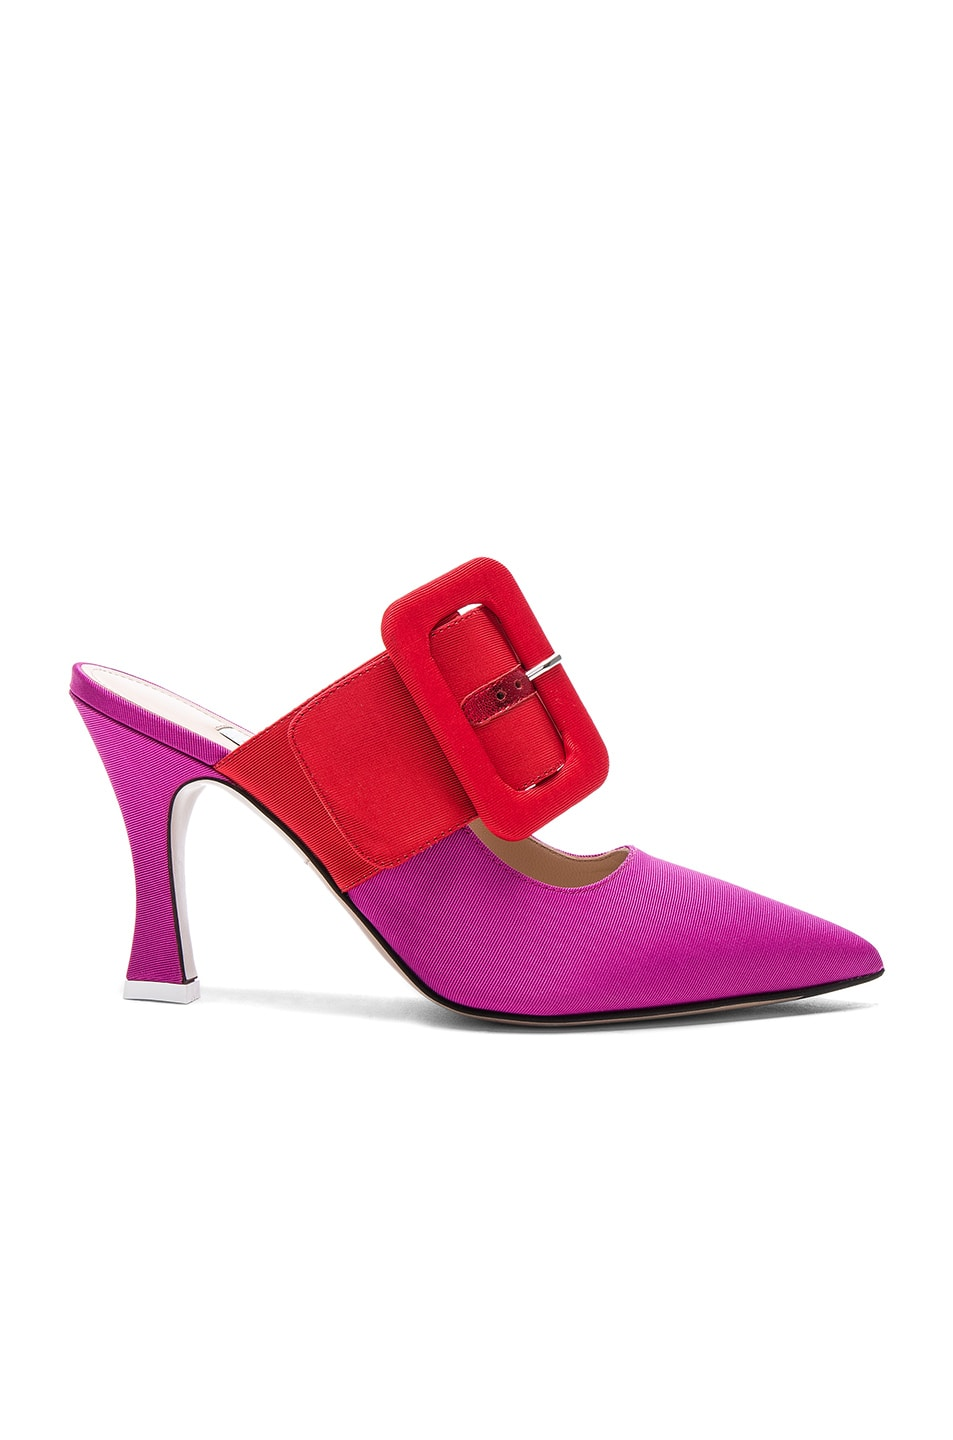 ATTICO Faille Chloe Mules in & Low Price Fee Shipping Sale Online Very Cheap Price jAMMT